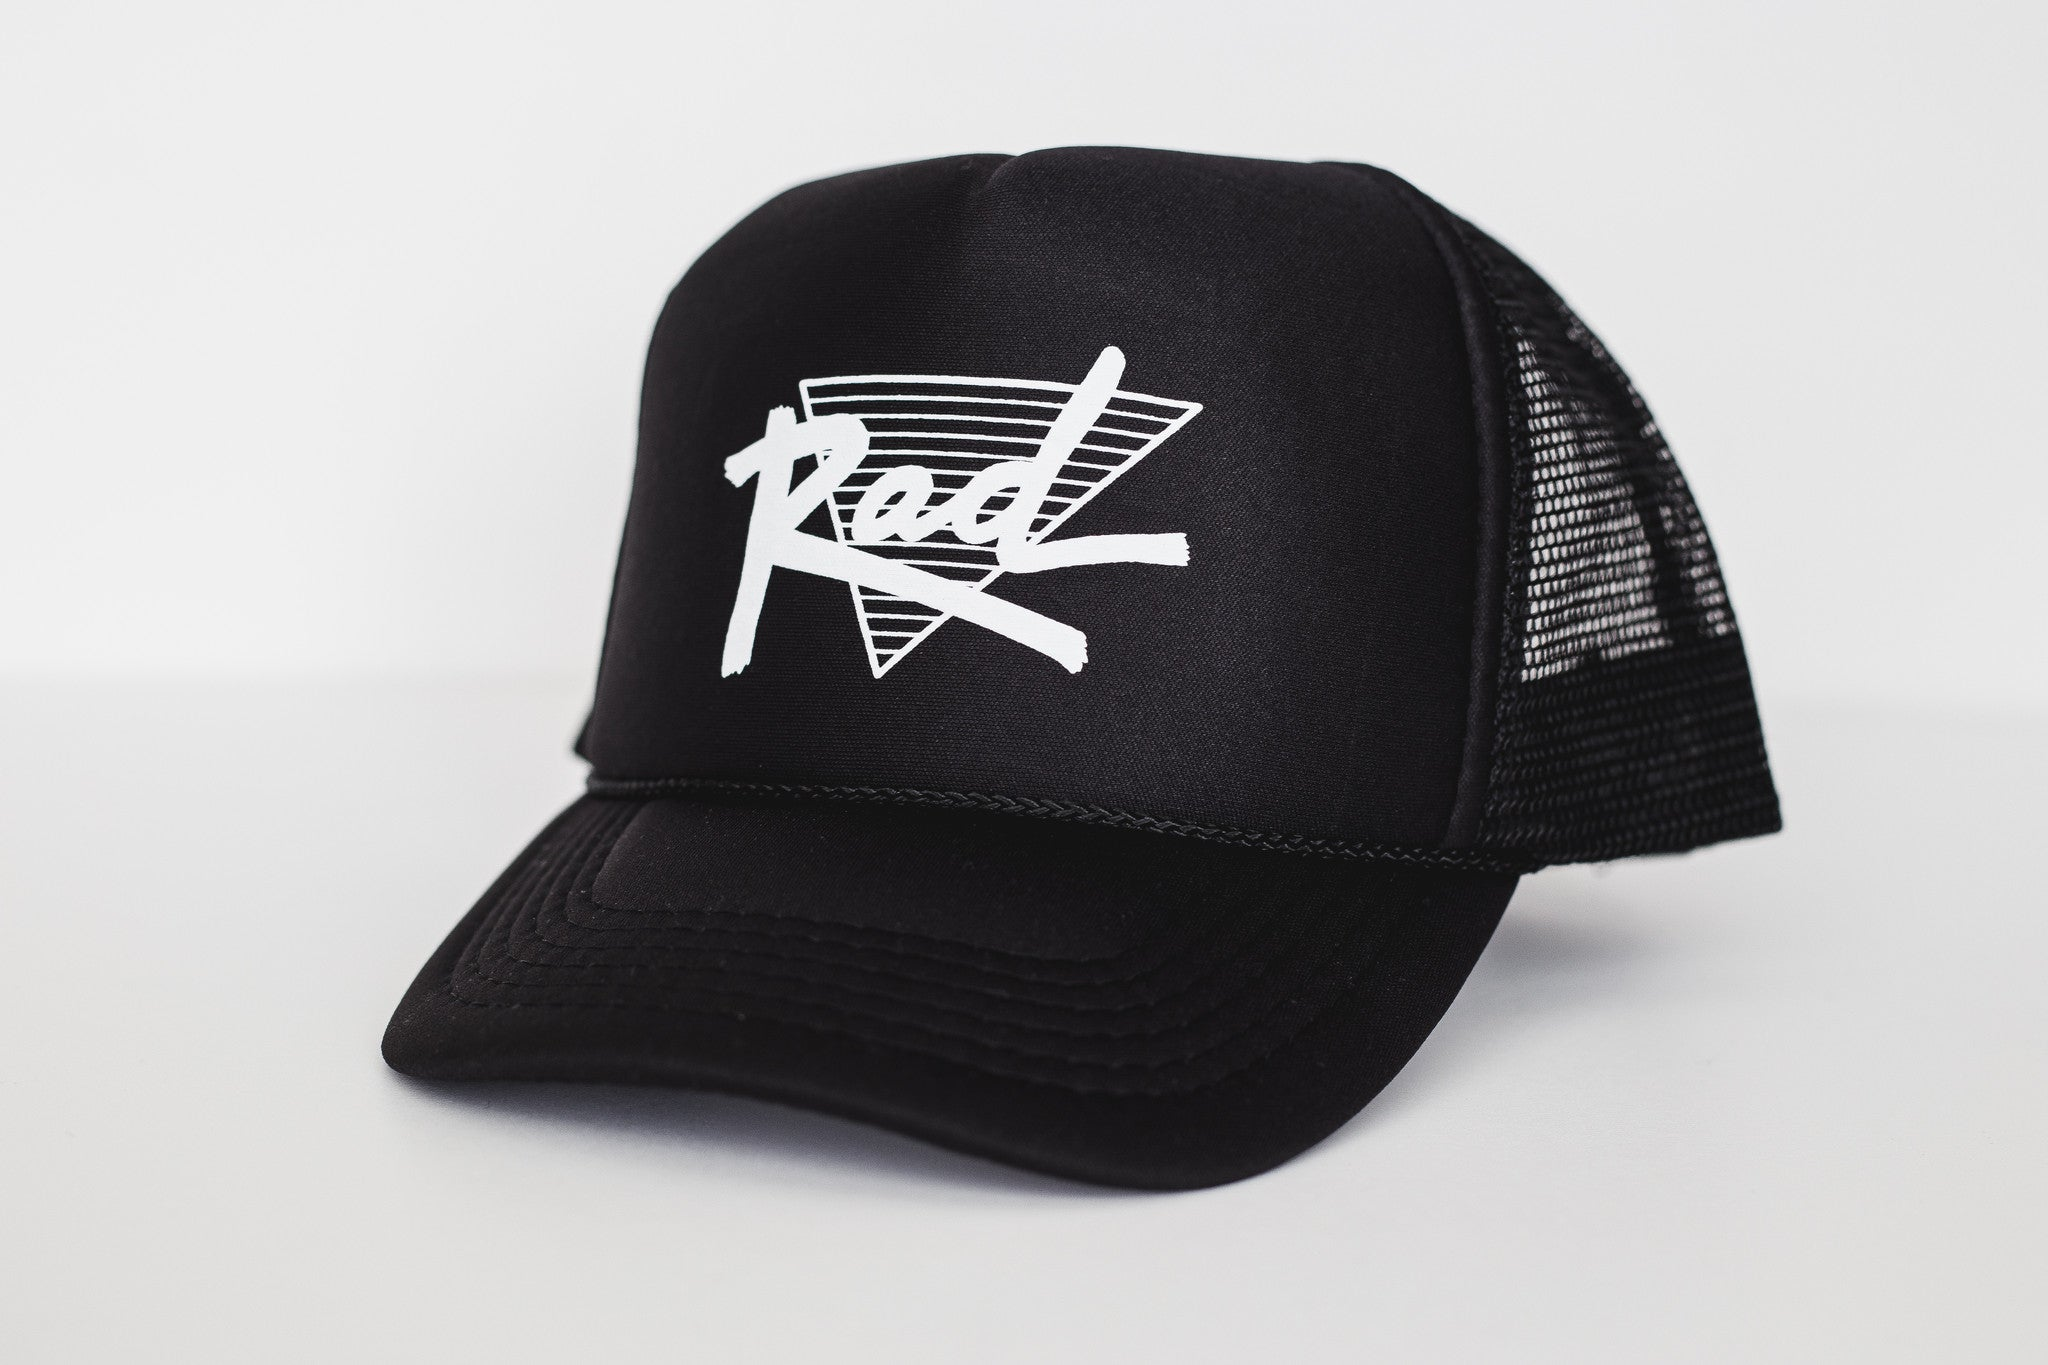 Rad (black) - Snapback Trucker Hat